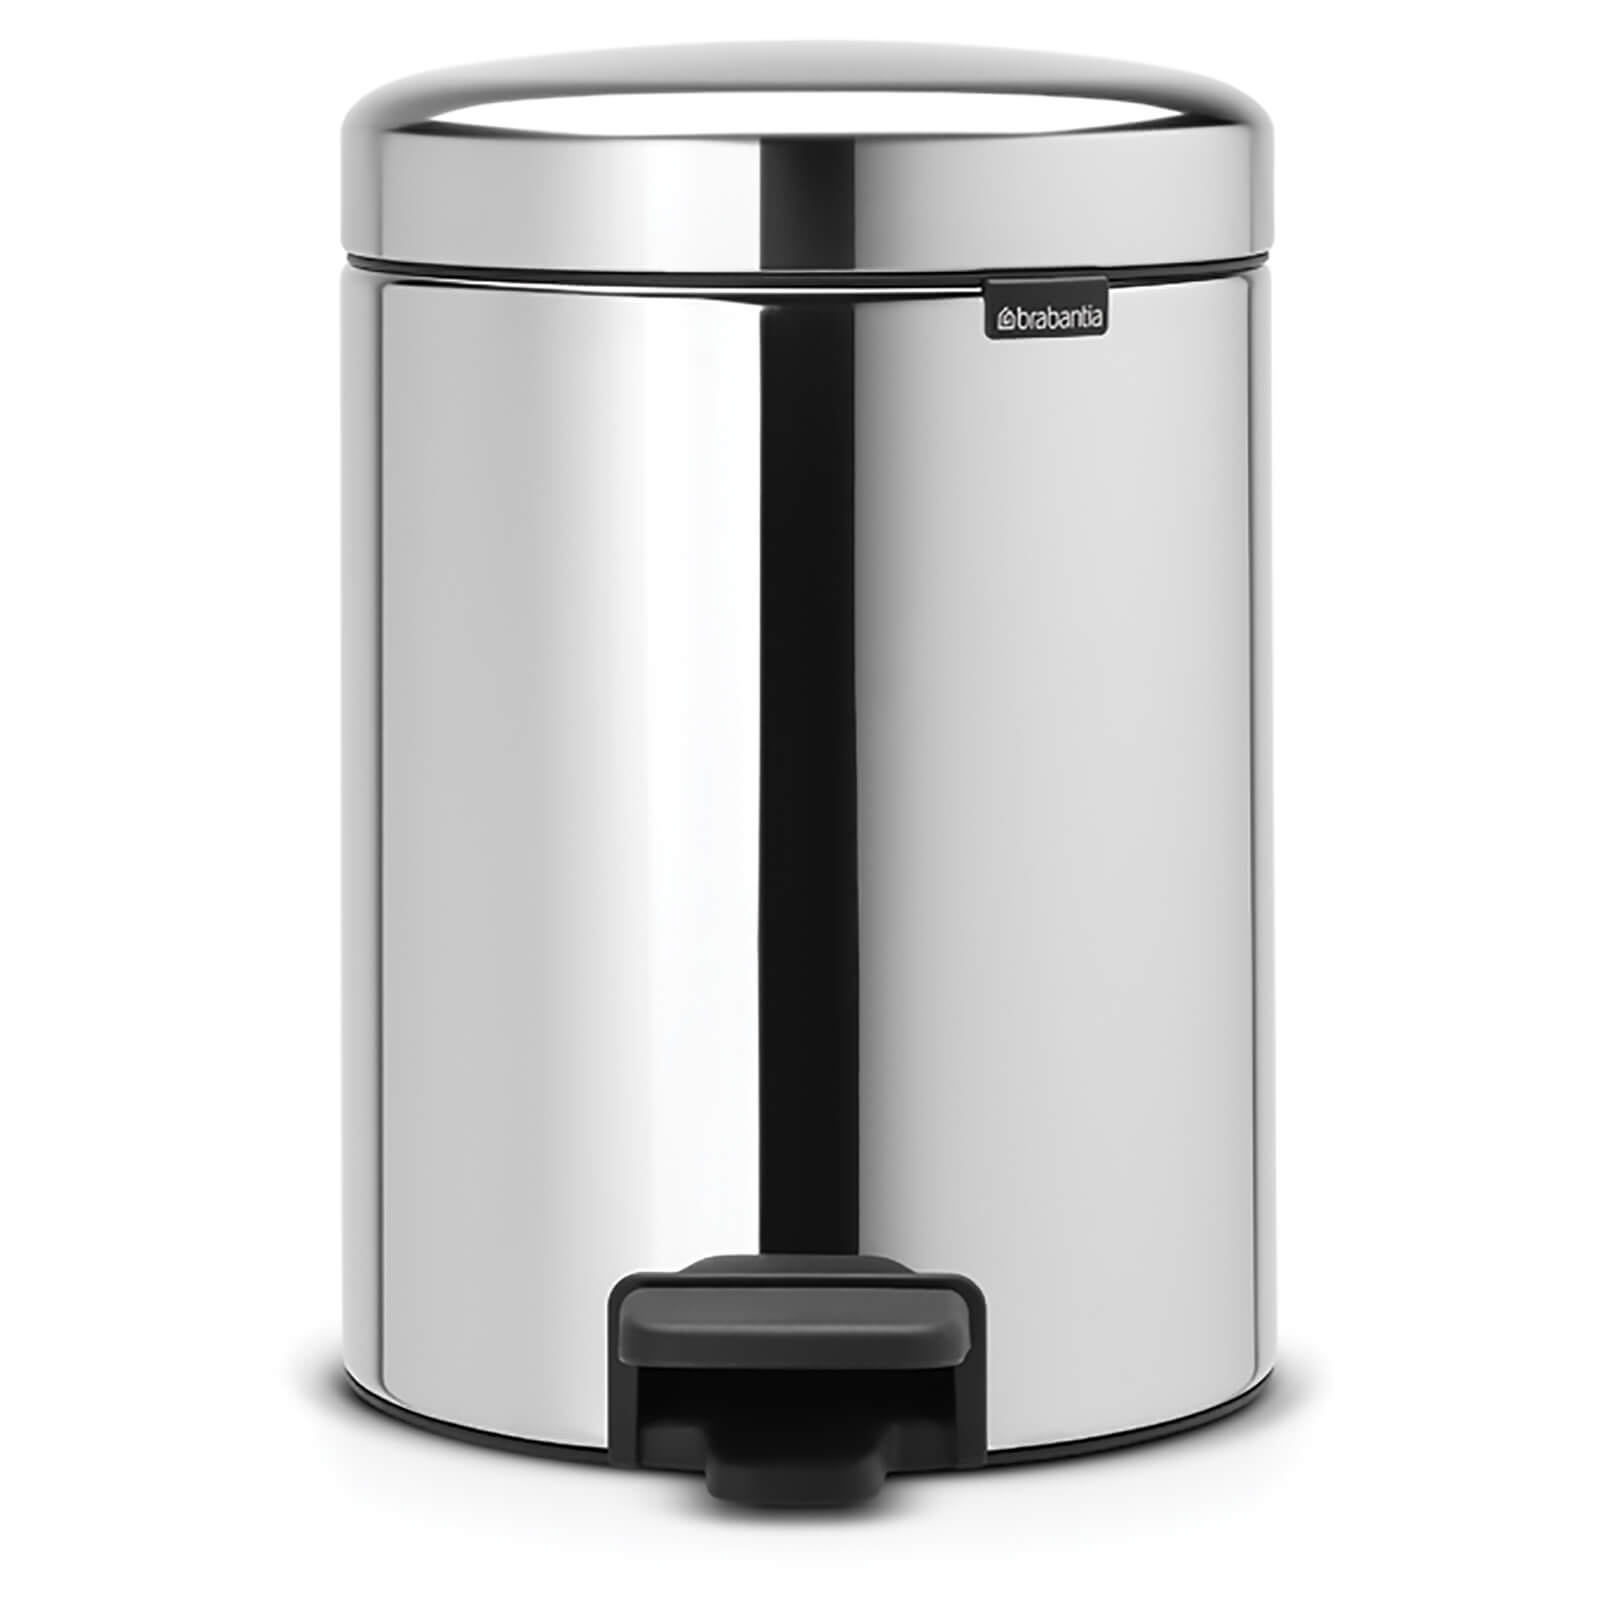 Brabantia New Icon 5 Litre Pedal Bin - Brilliant Steel